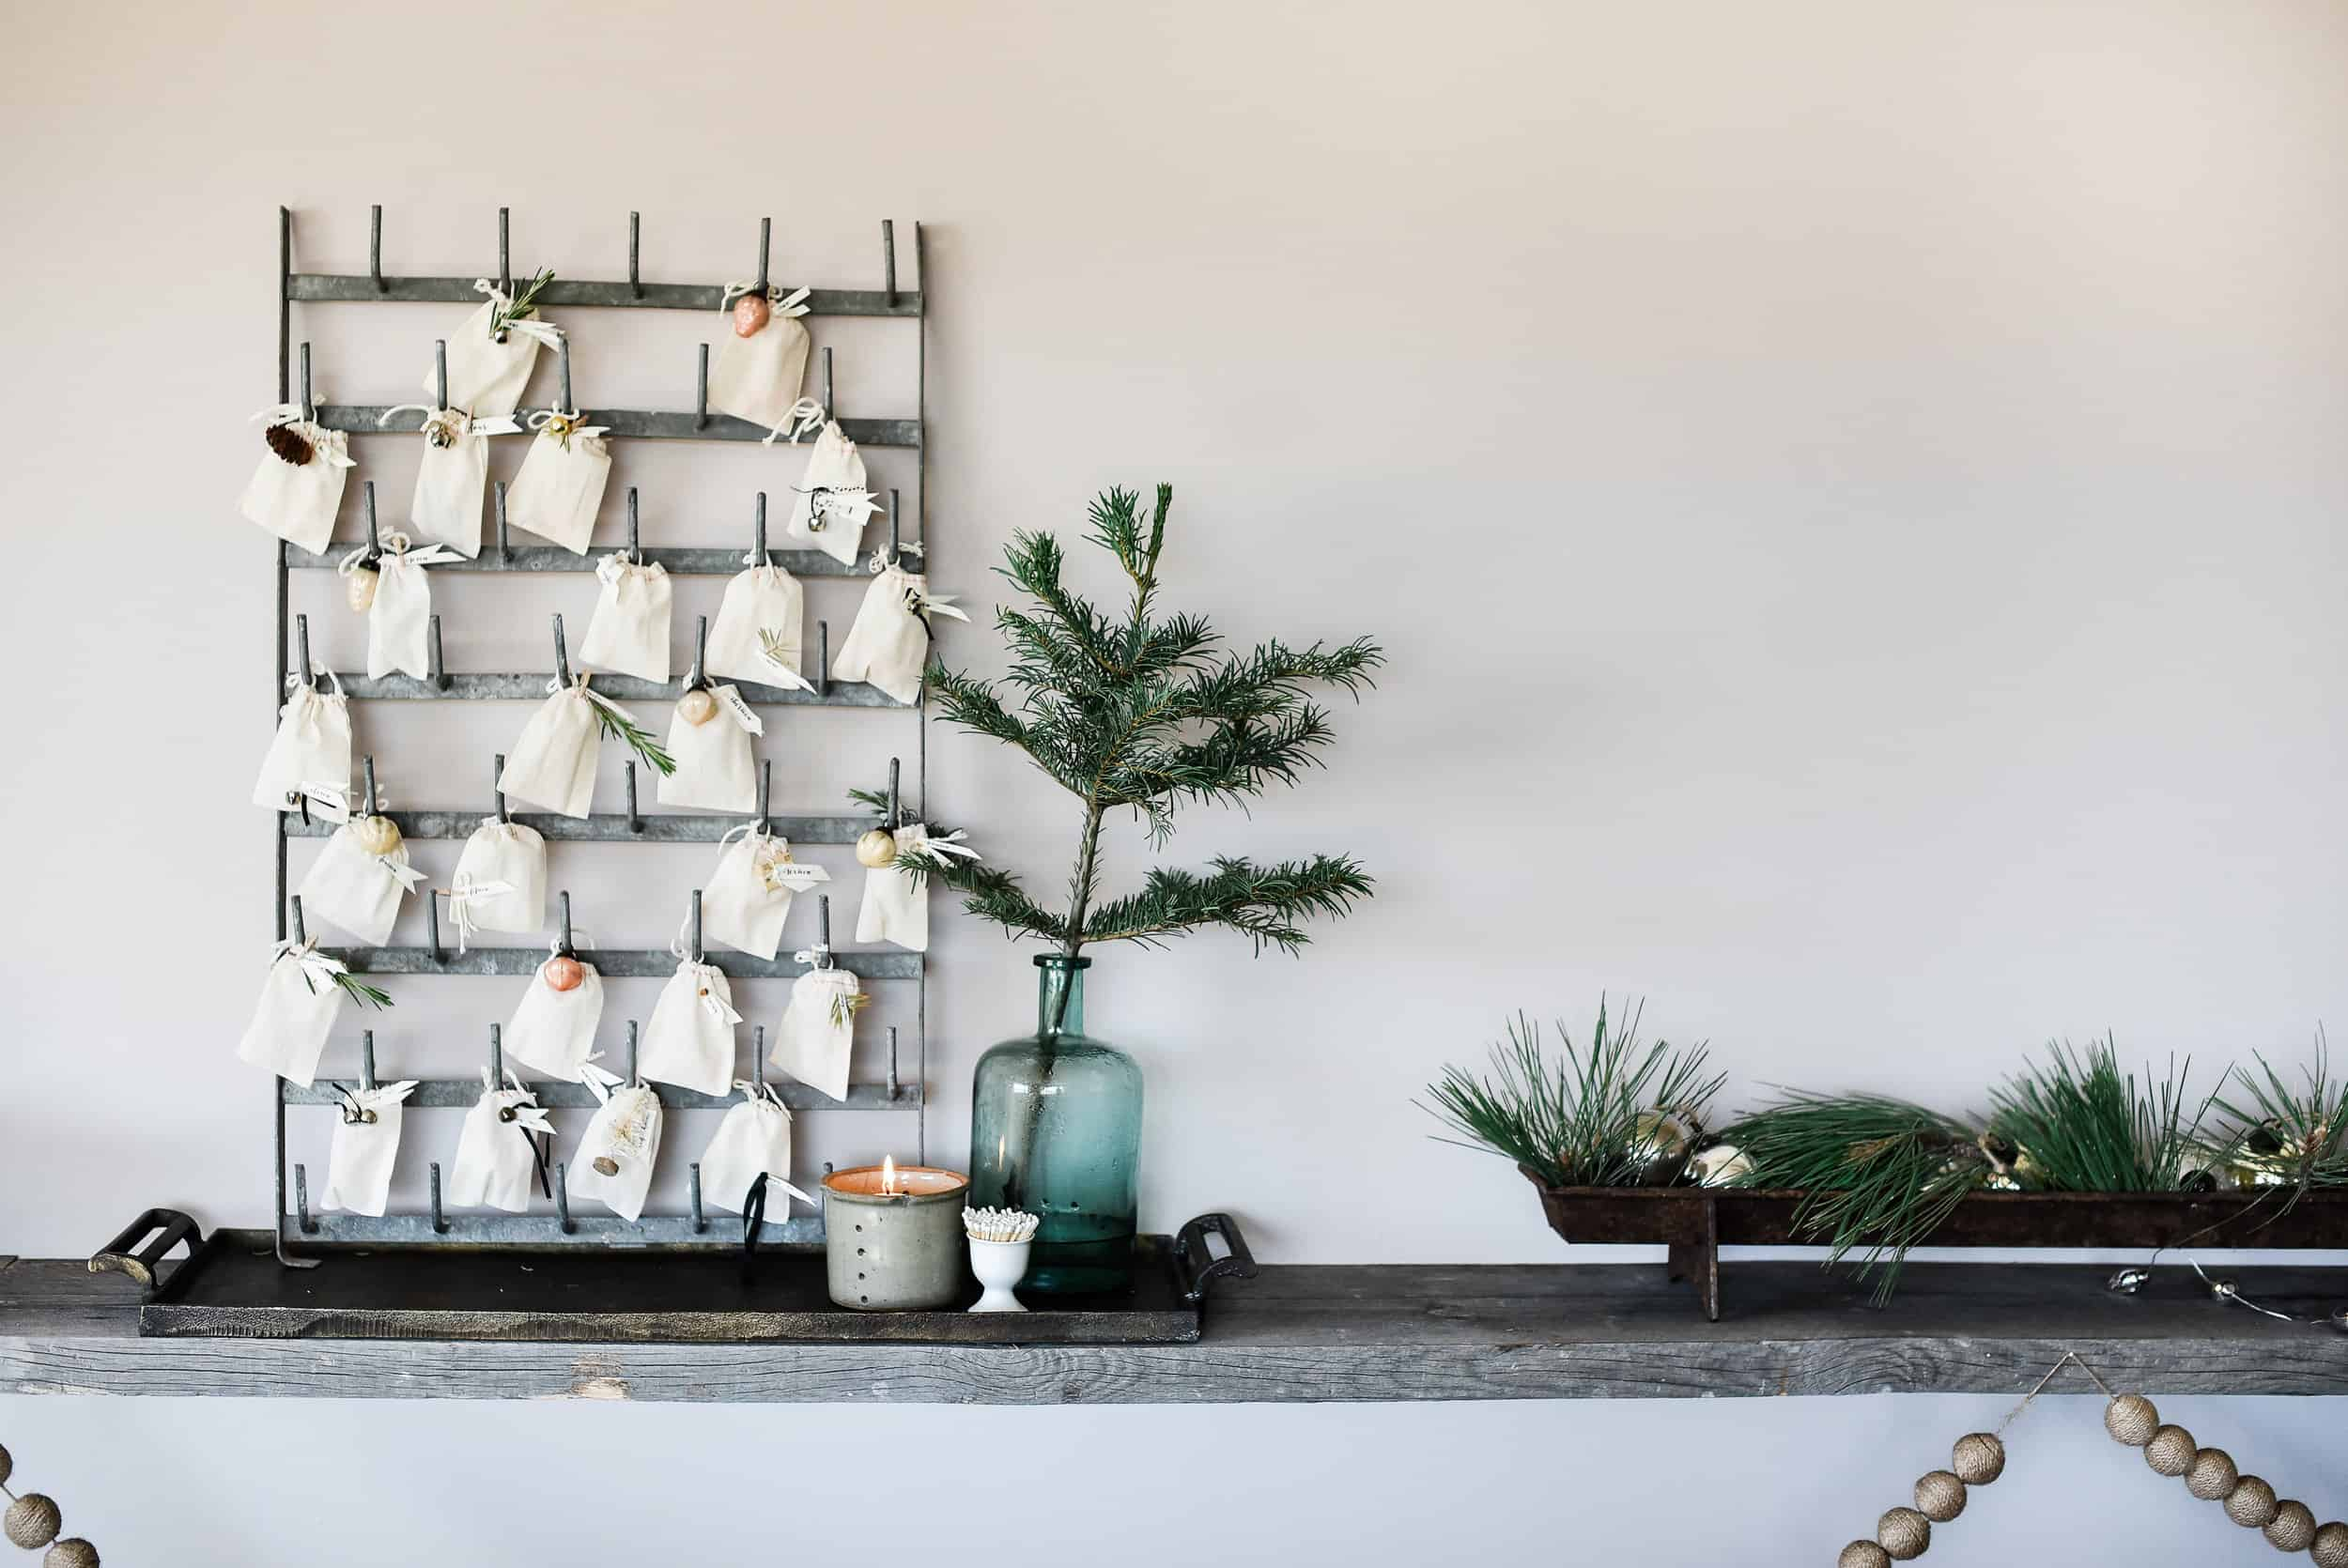 This vintage wall mount herrison (or bottle drying rack) is the perfect place for our DIY advent calendar this year! Each bag is filled with candies, activities, or bible verses.